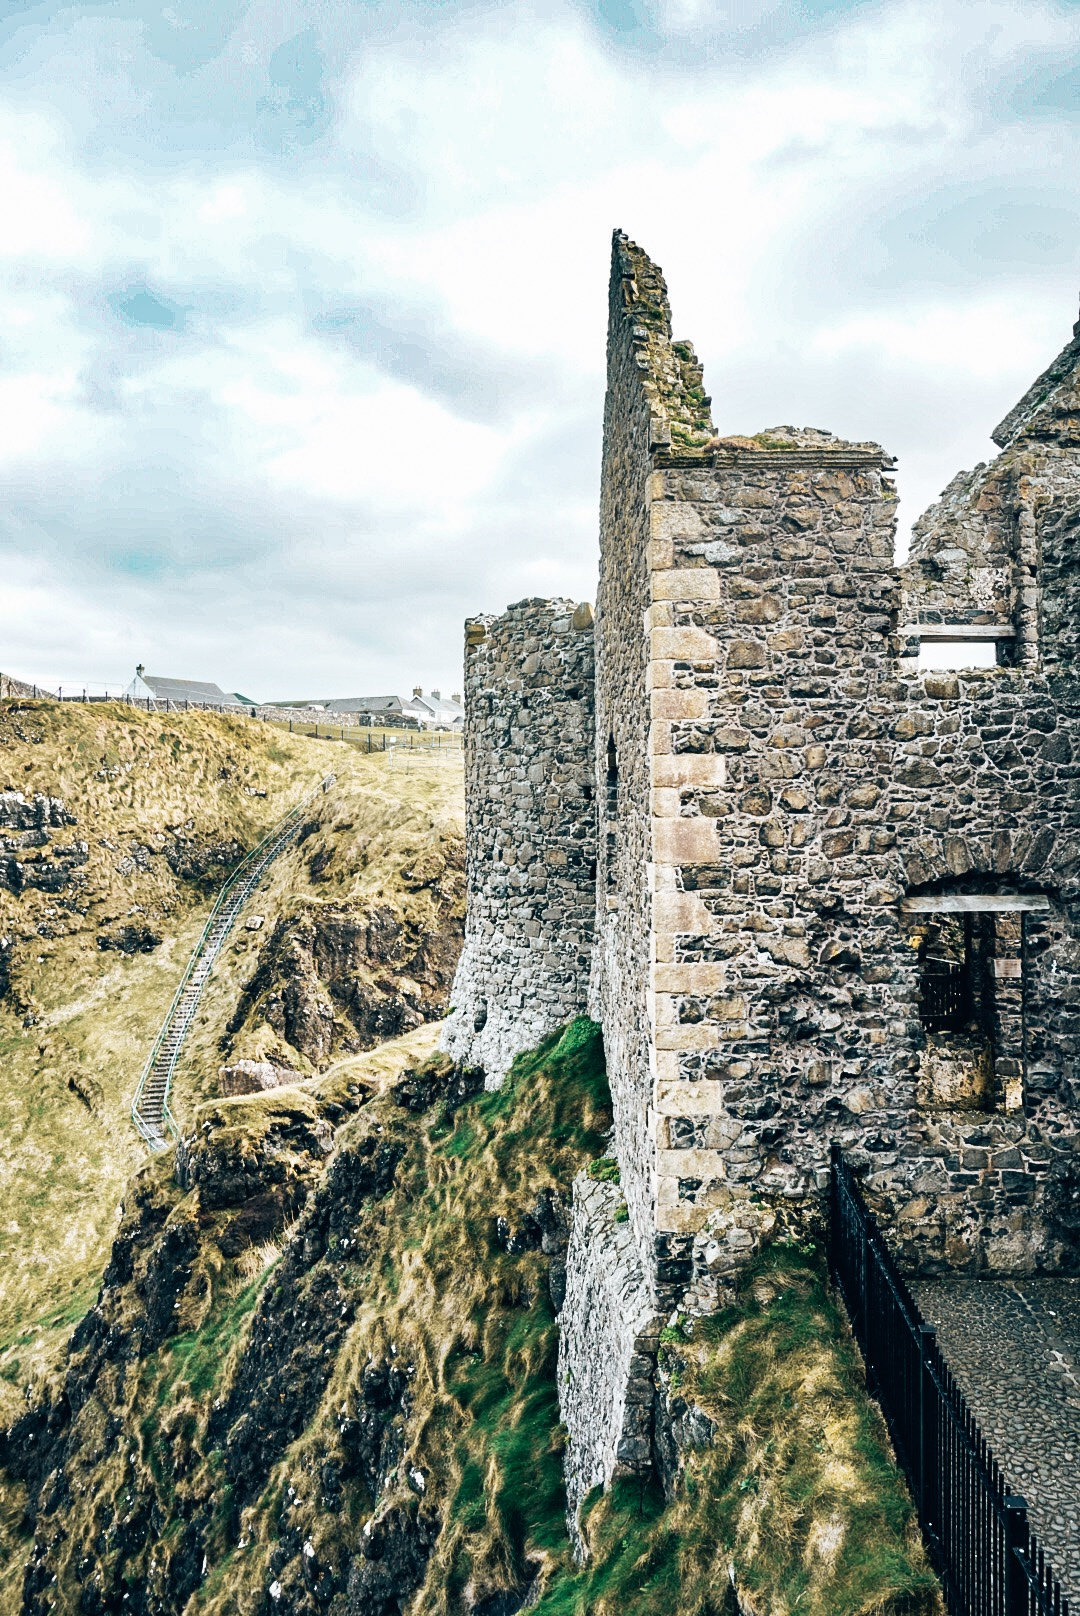 Another cliff view of Dunluce Castle